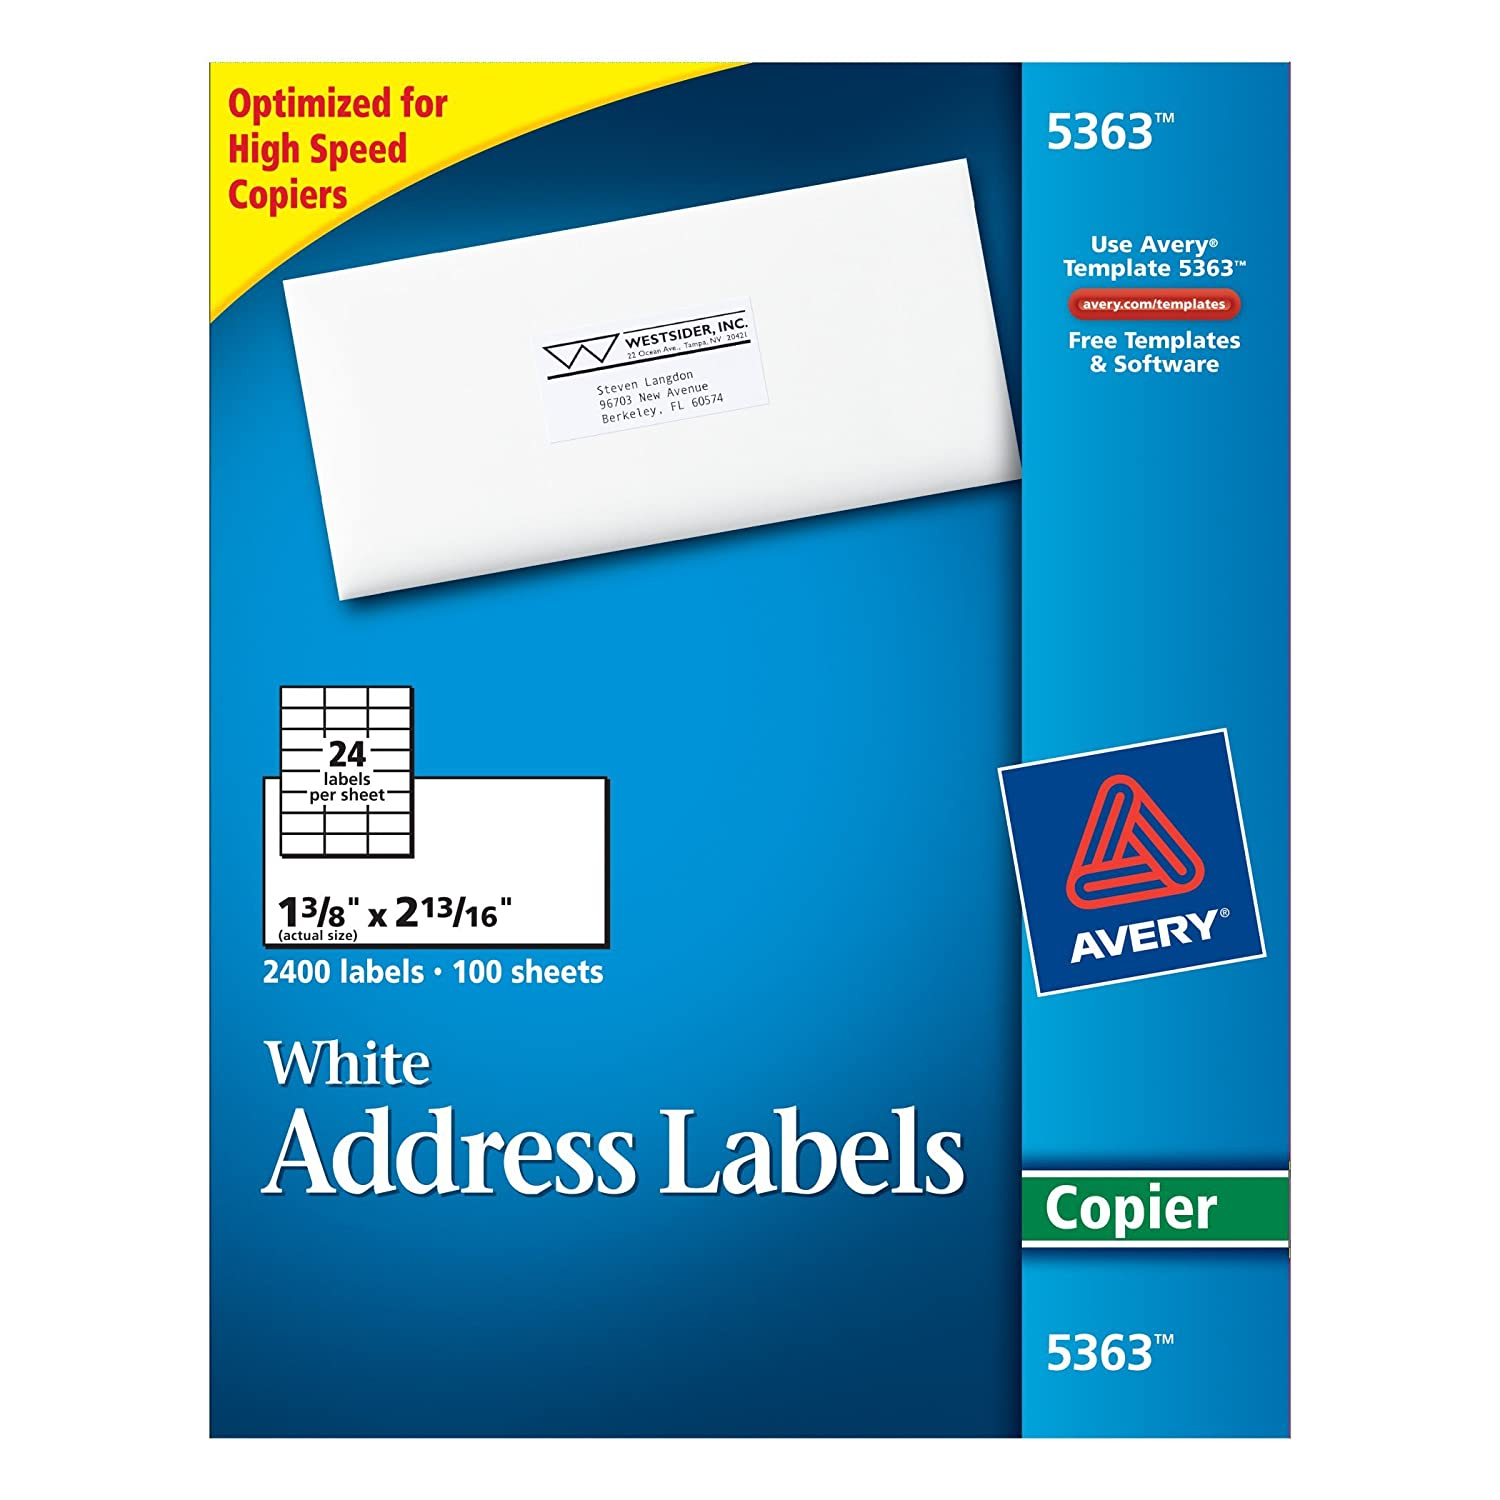 Amazon.com : Avery White Copier Mailing Labels (5363) : Office ...